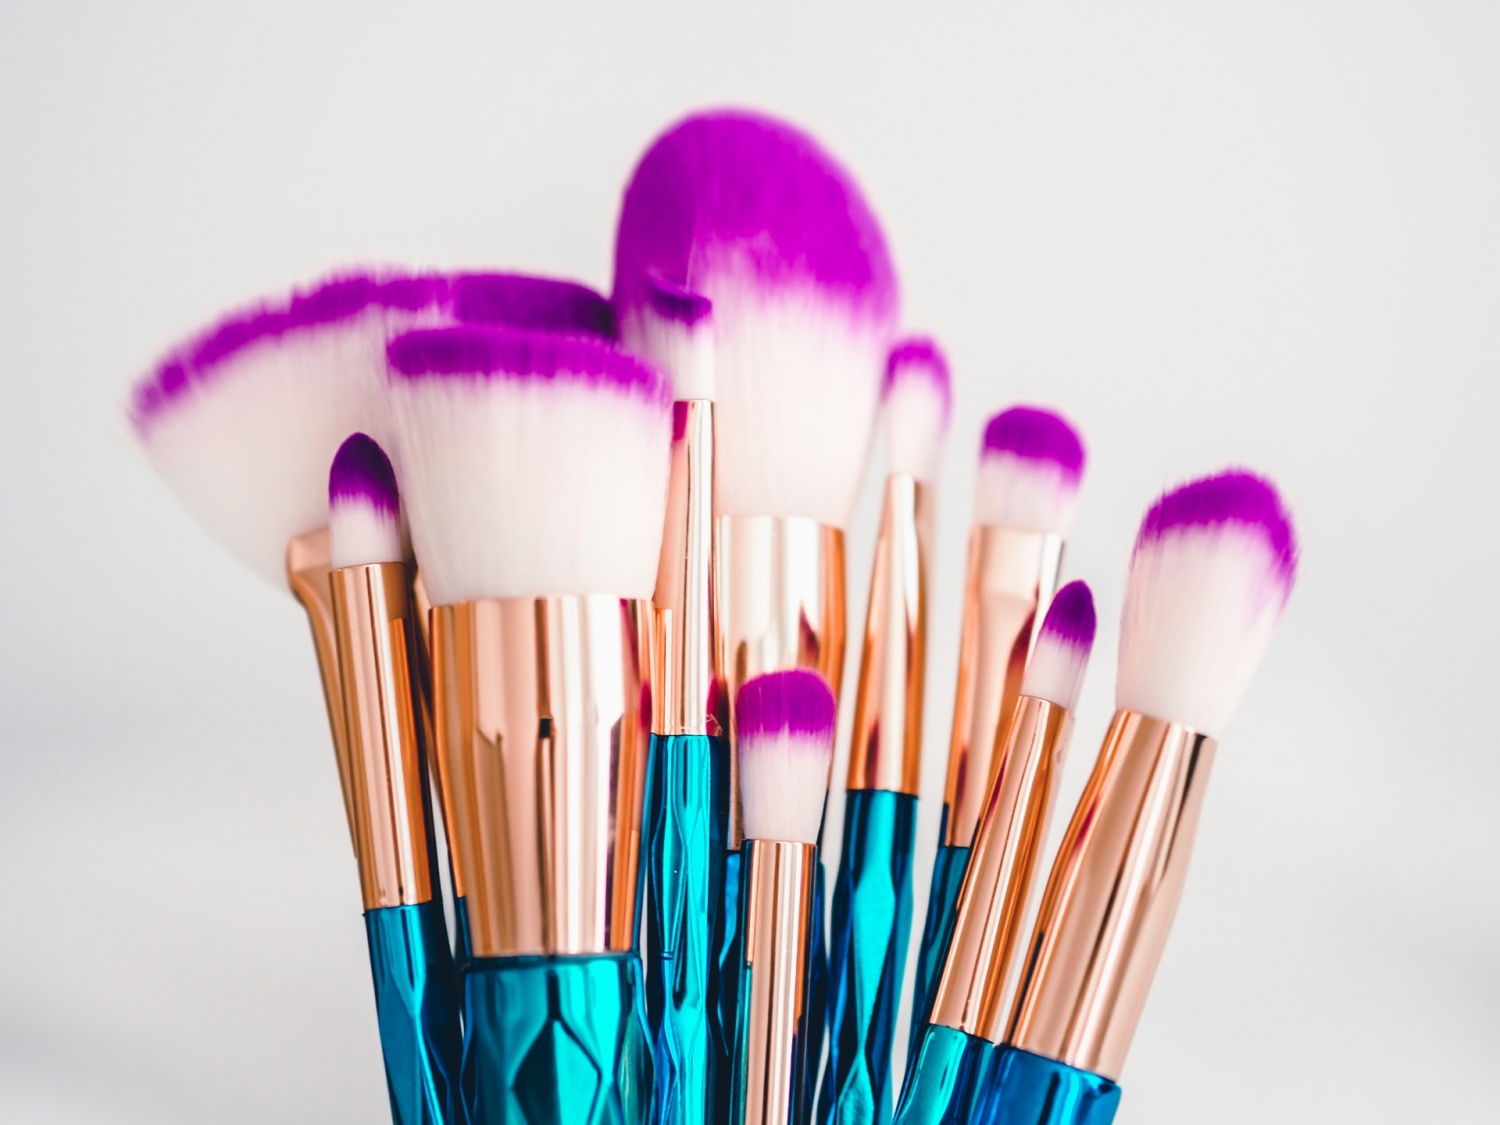 How to Clean Makeup Brushes: The Lazy Girl's Guide